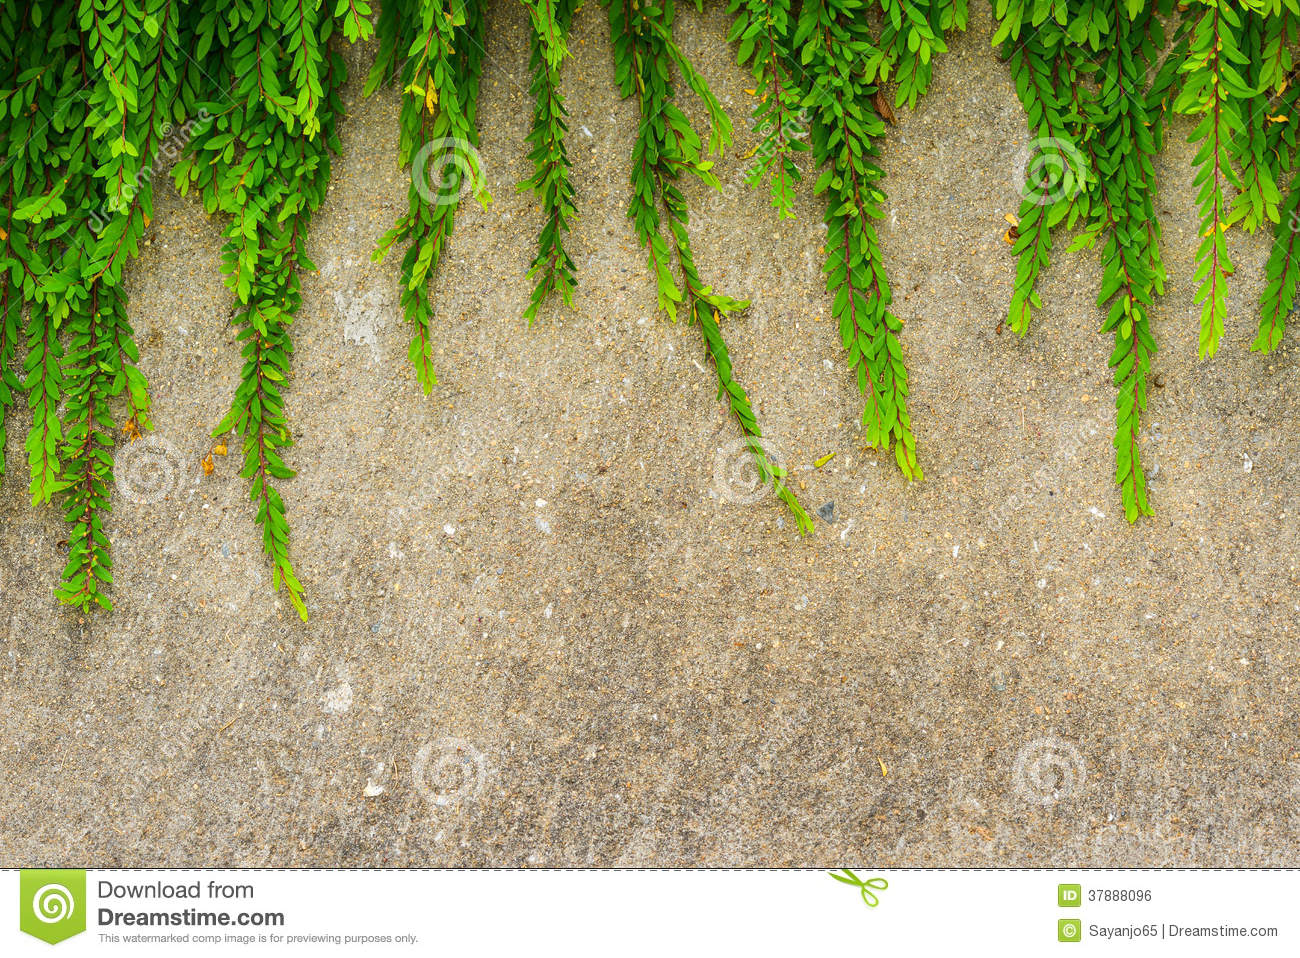 Download Fresh Green Leaf Plant On Grunge Wall Background. Stock Photo - Image of concrete, background: 37888096